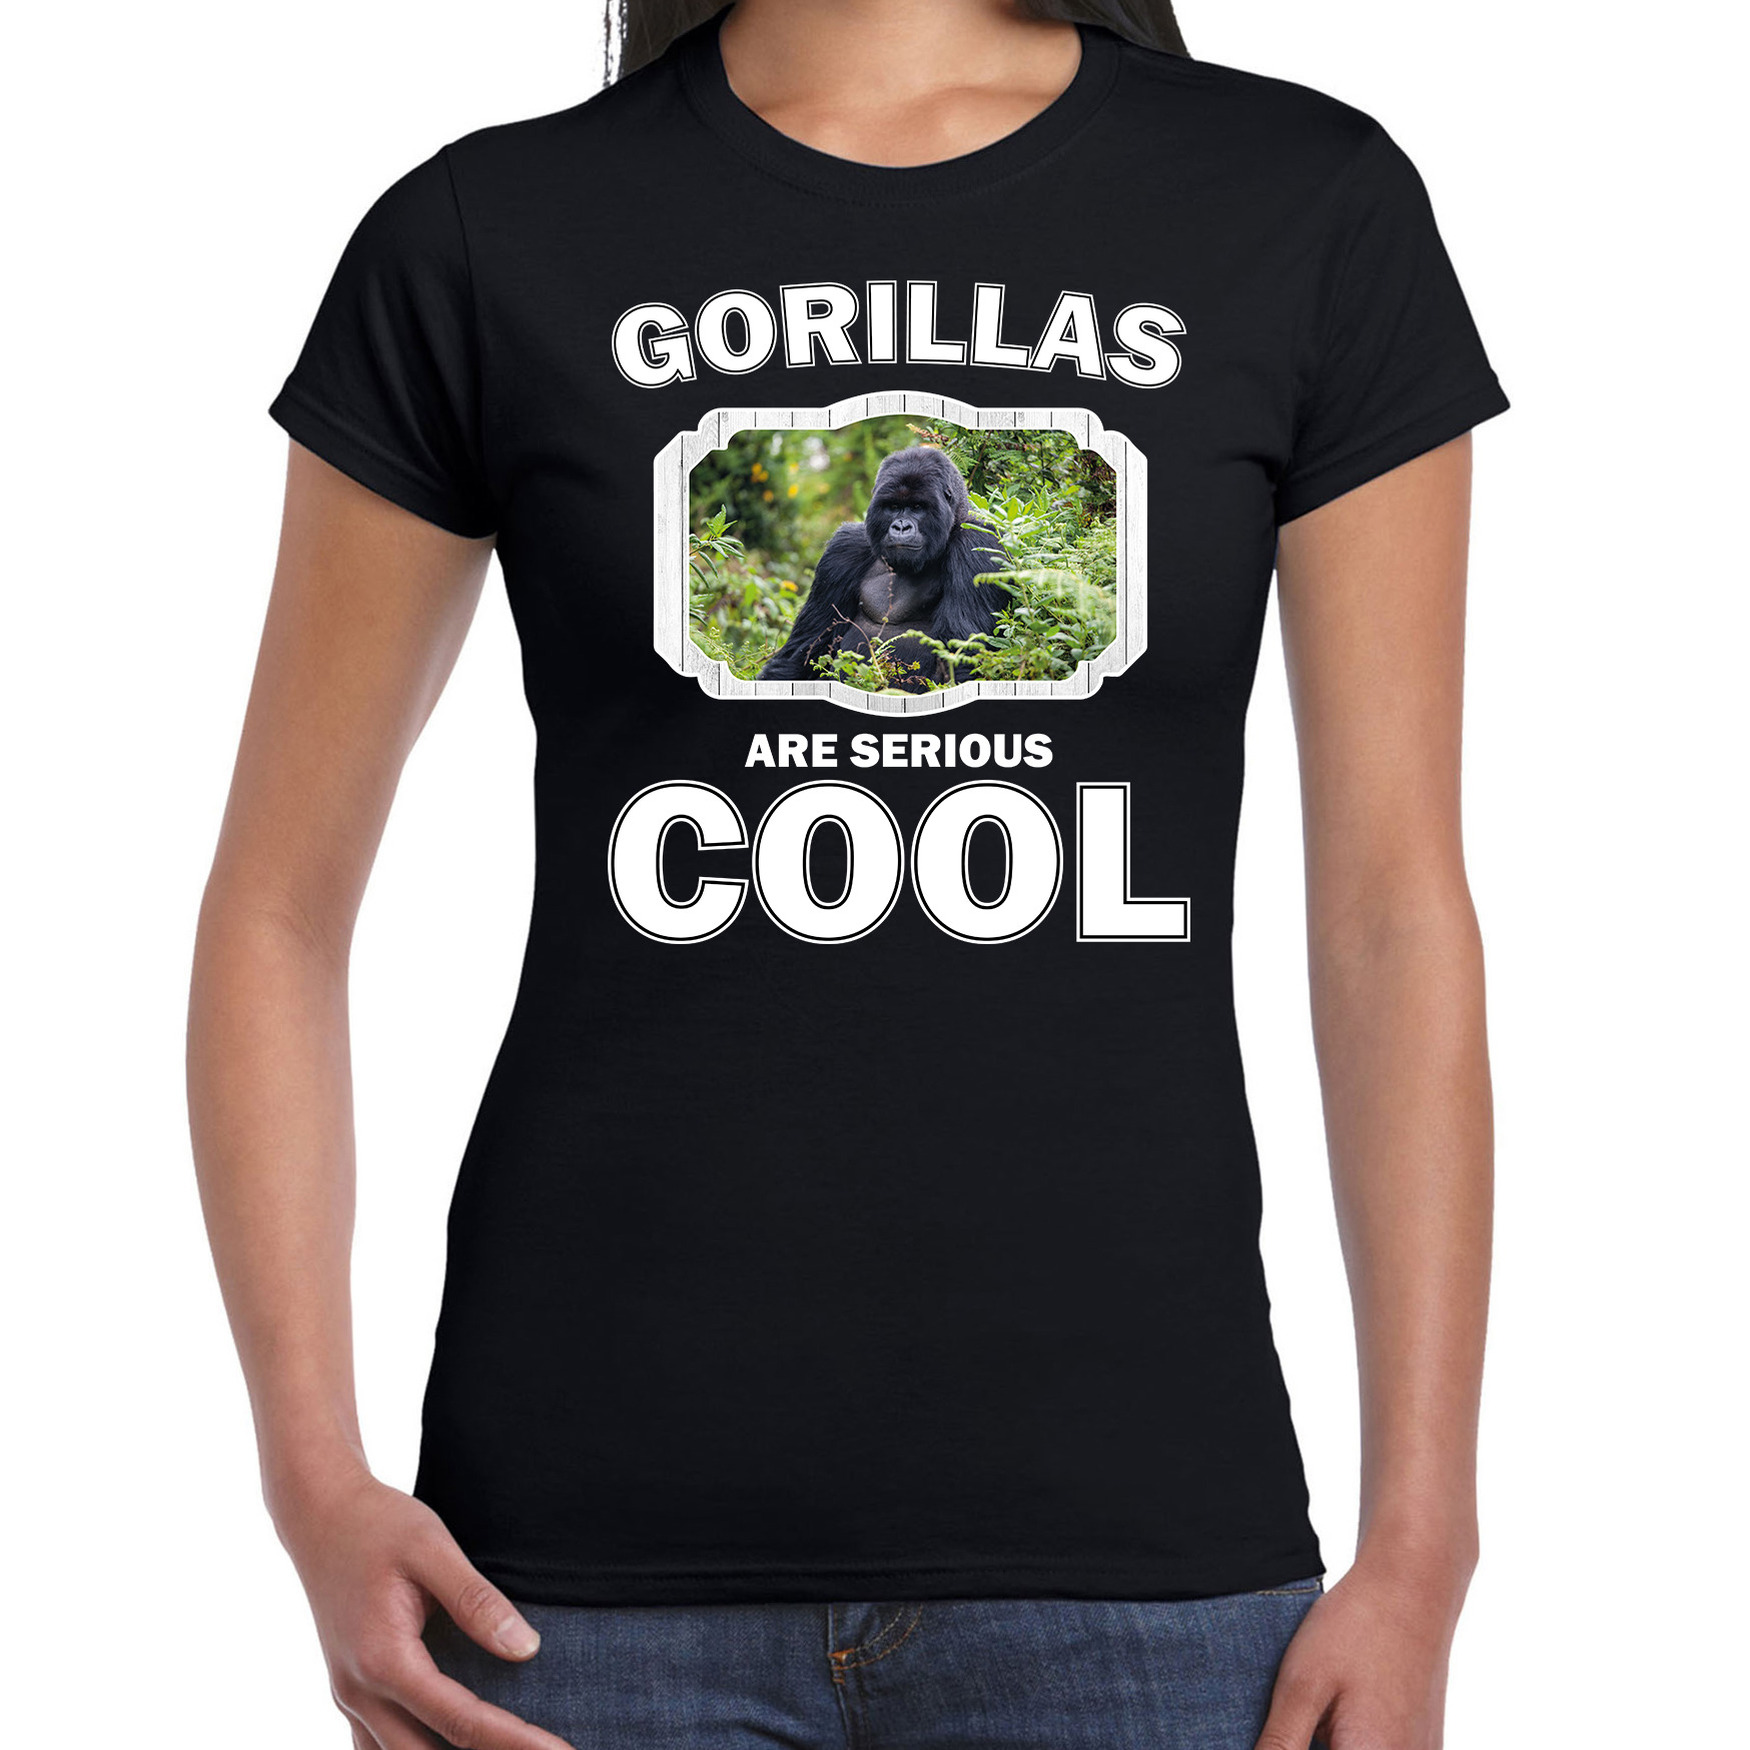 T-shirt gorillas are serious cool zwart dames - gorilla apen/ gorilla shirt